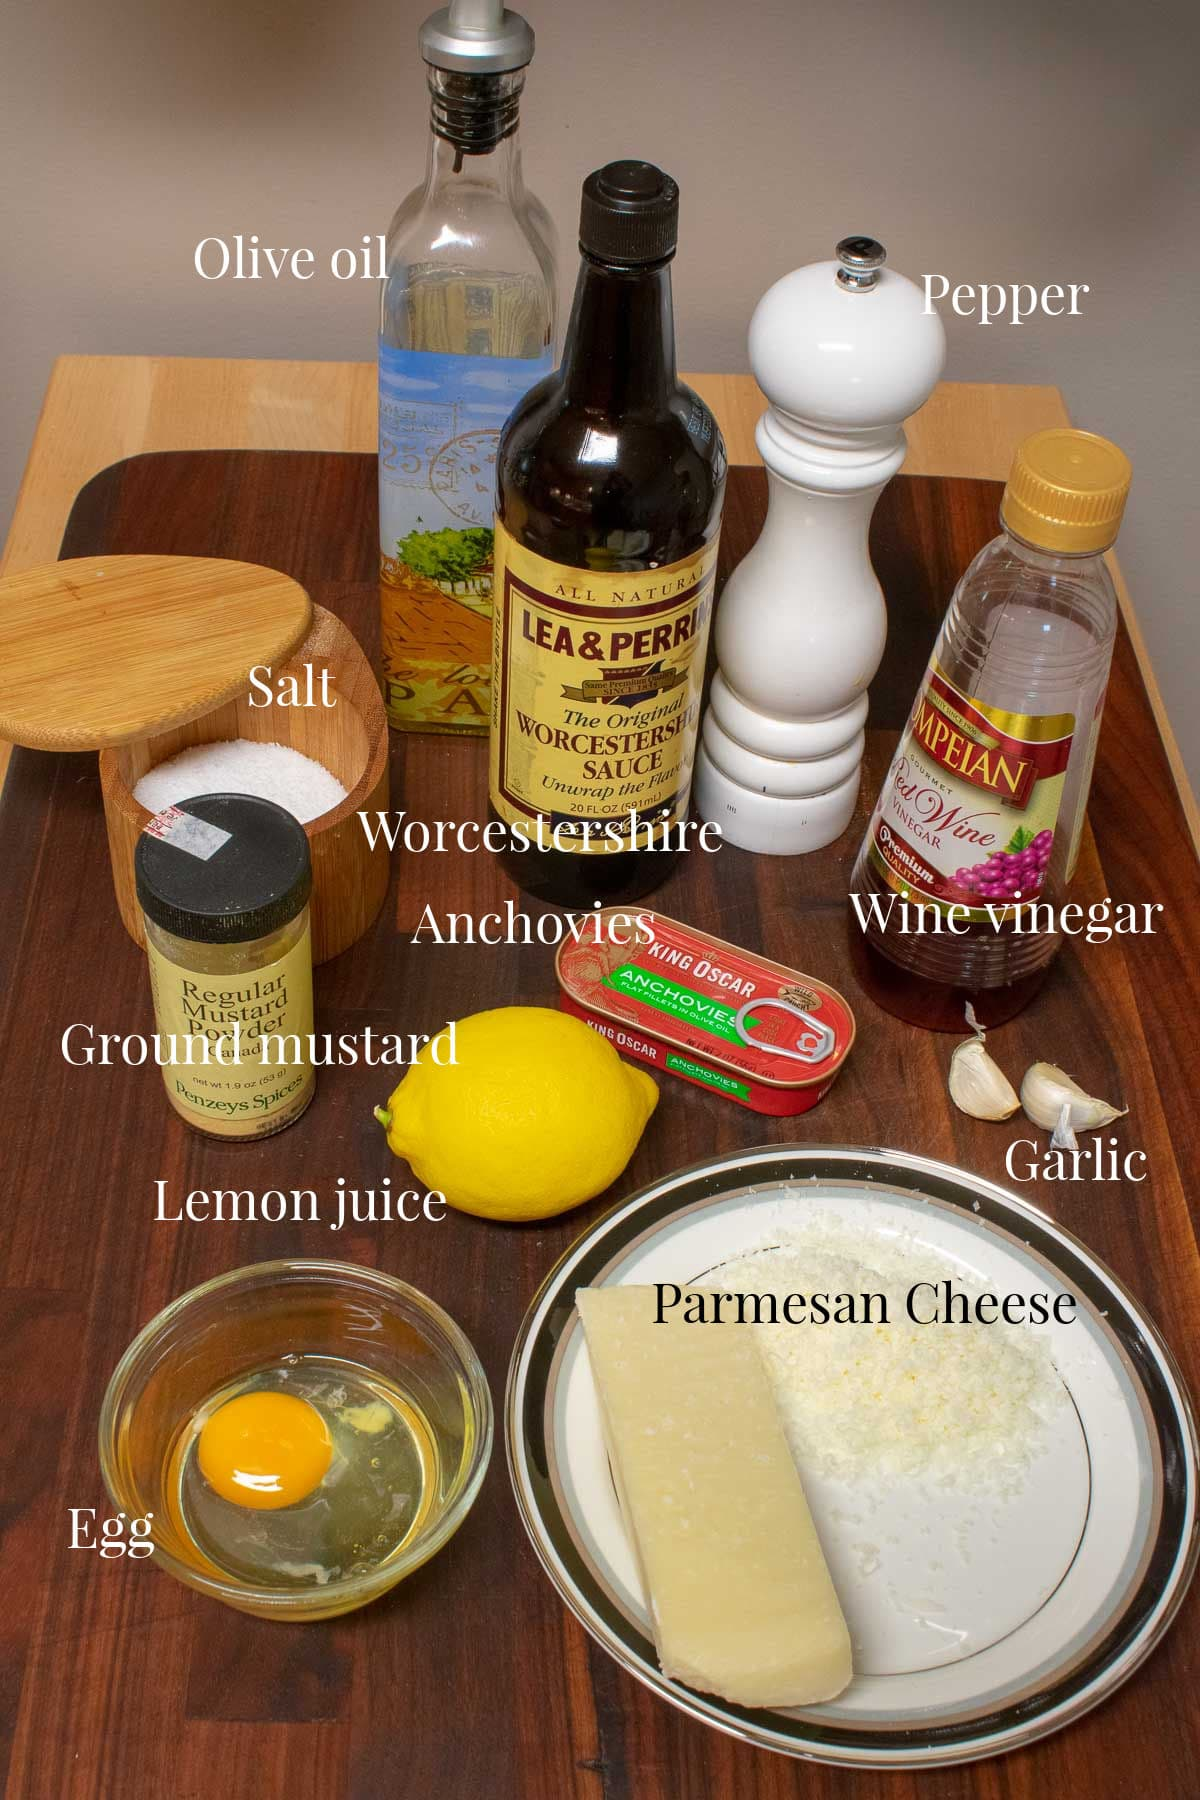 Photo of the ingredients used to make the dressing.